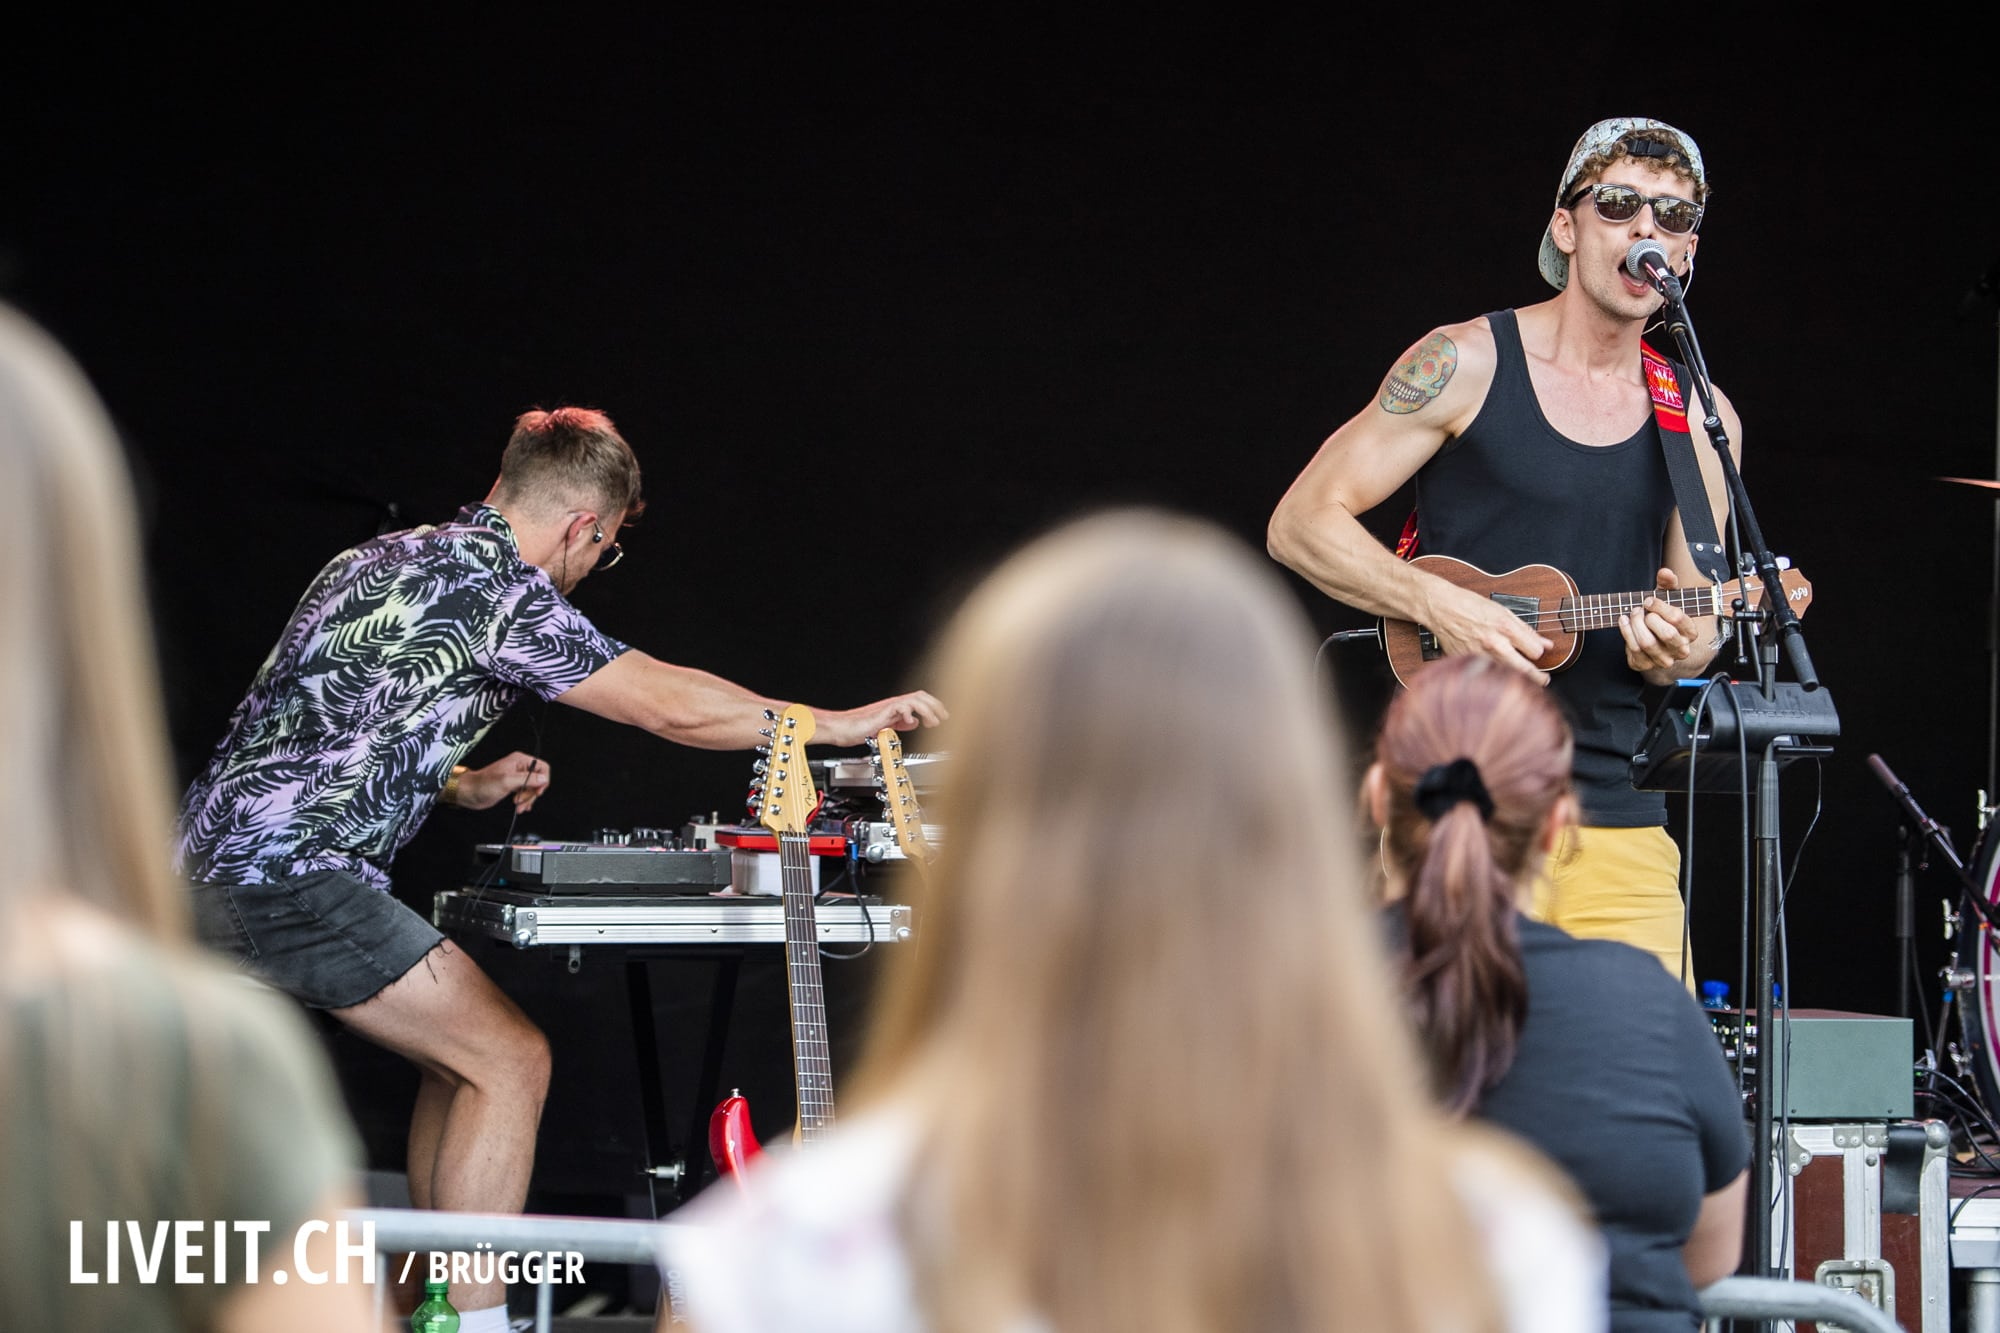 One Lucky Sperm Thunfest 2018 in Thun. (Dominic Bruegger for liveit.ch)